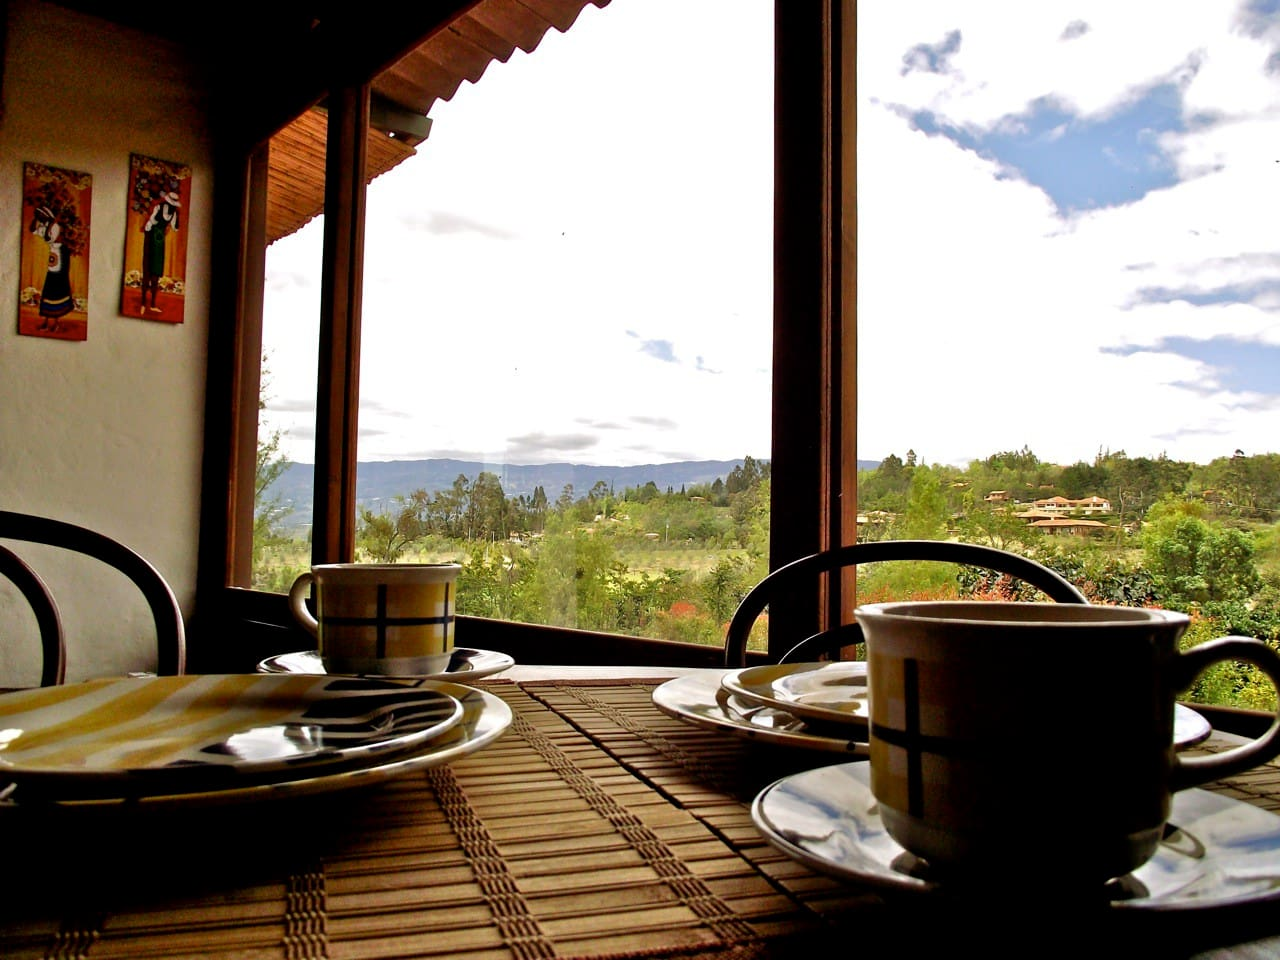 Spectacular view from your breakfast table.